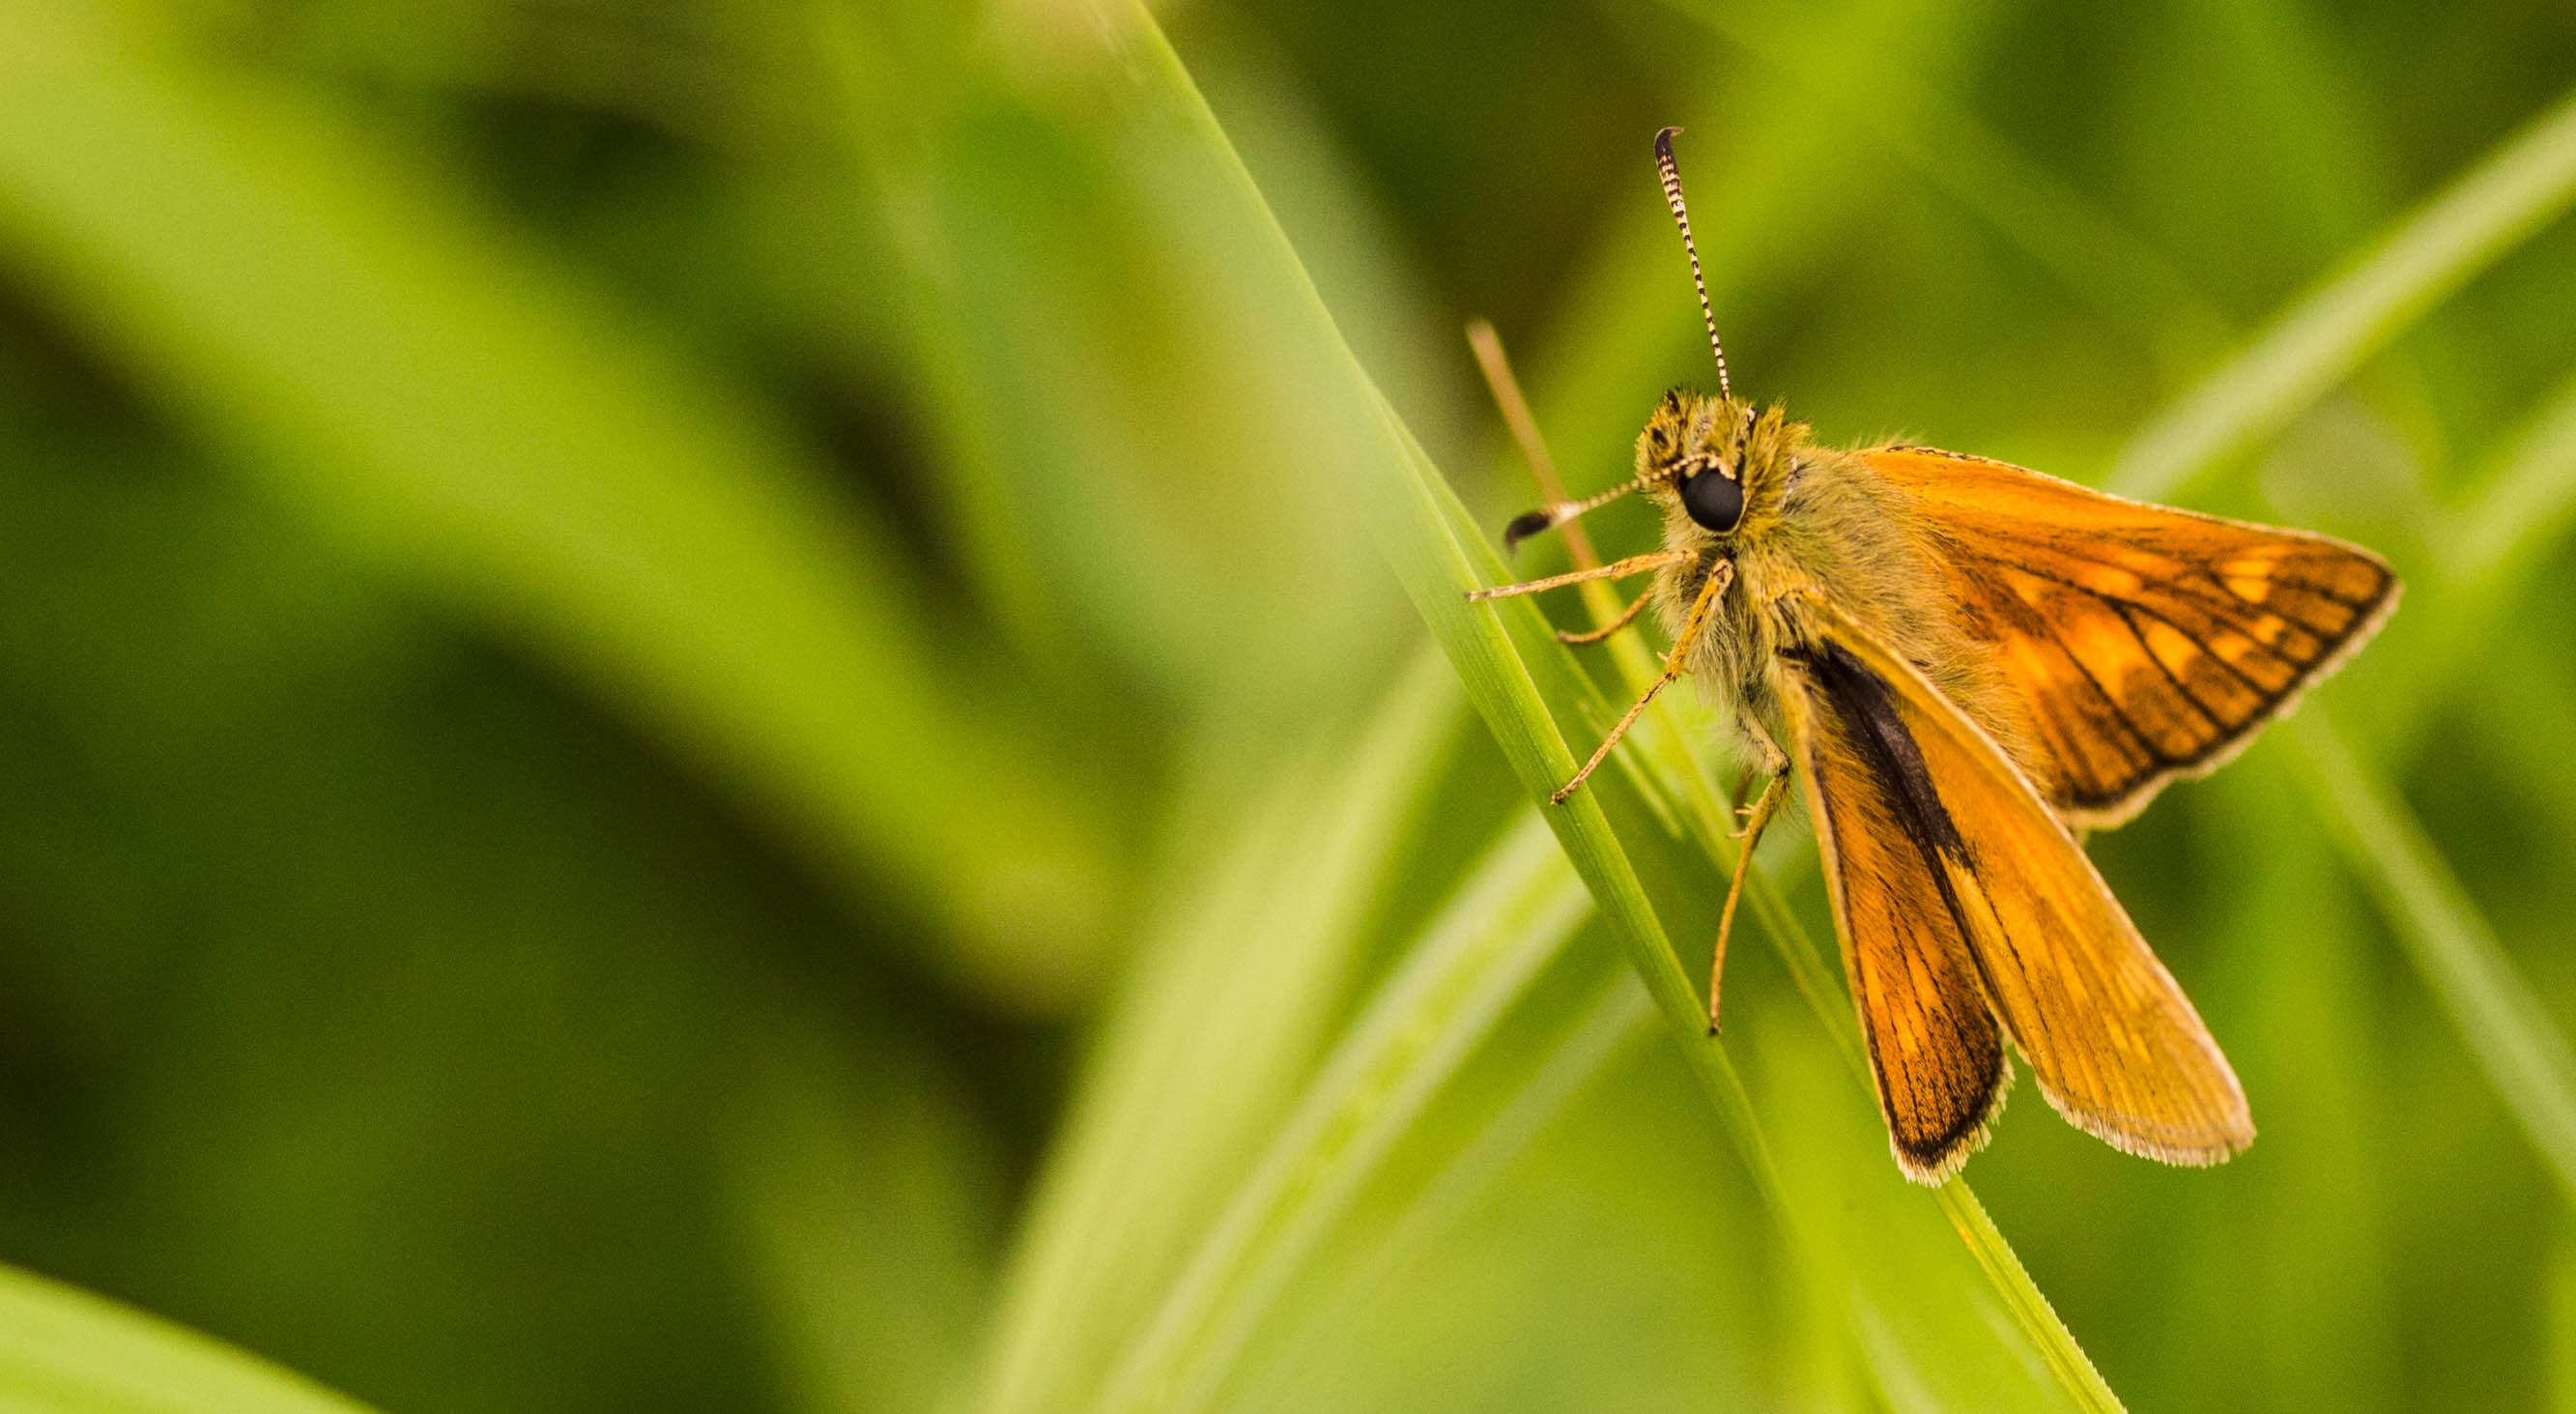 Fuzzy moth lands on a blade of green grass